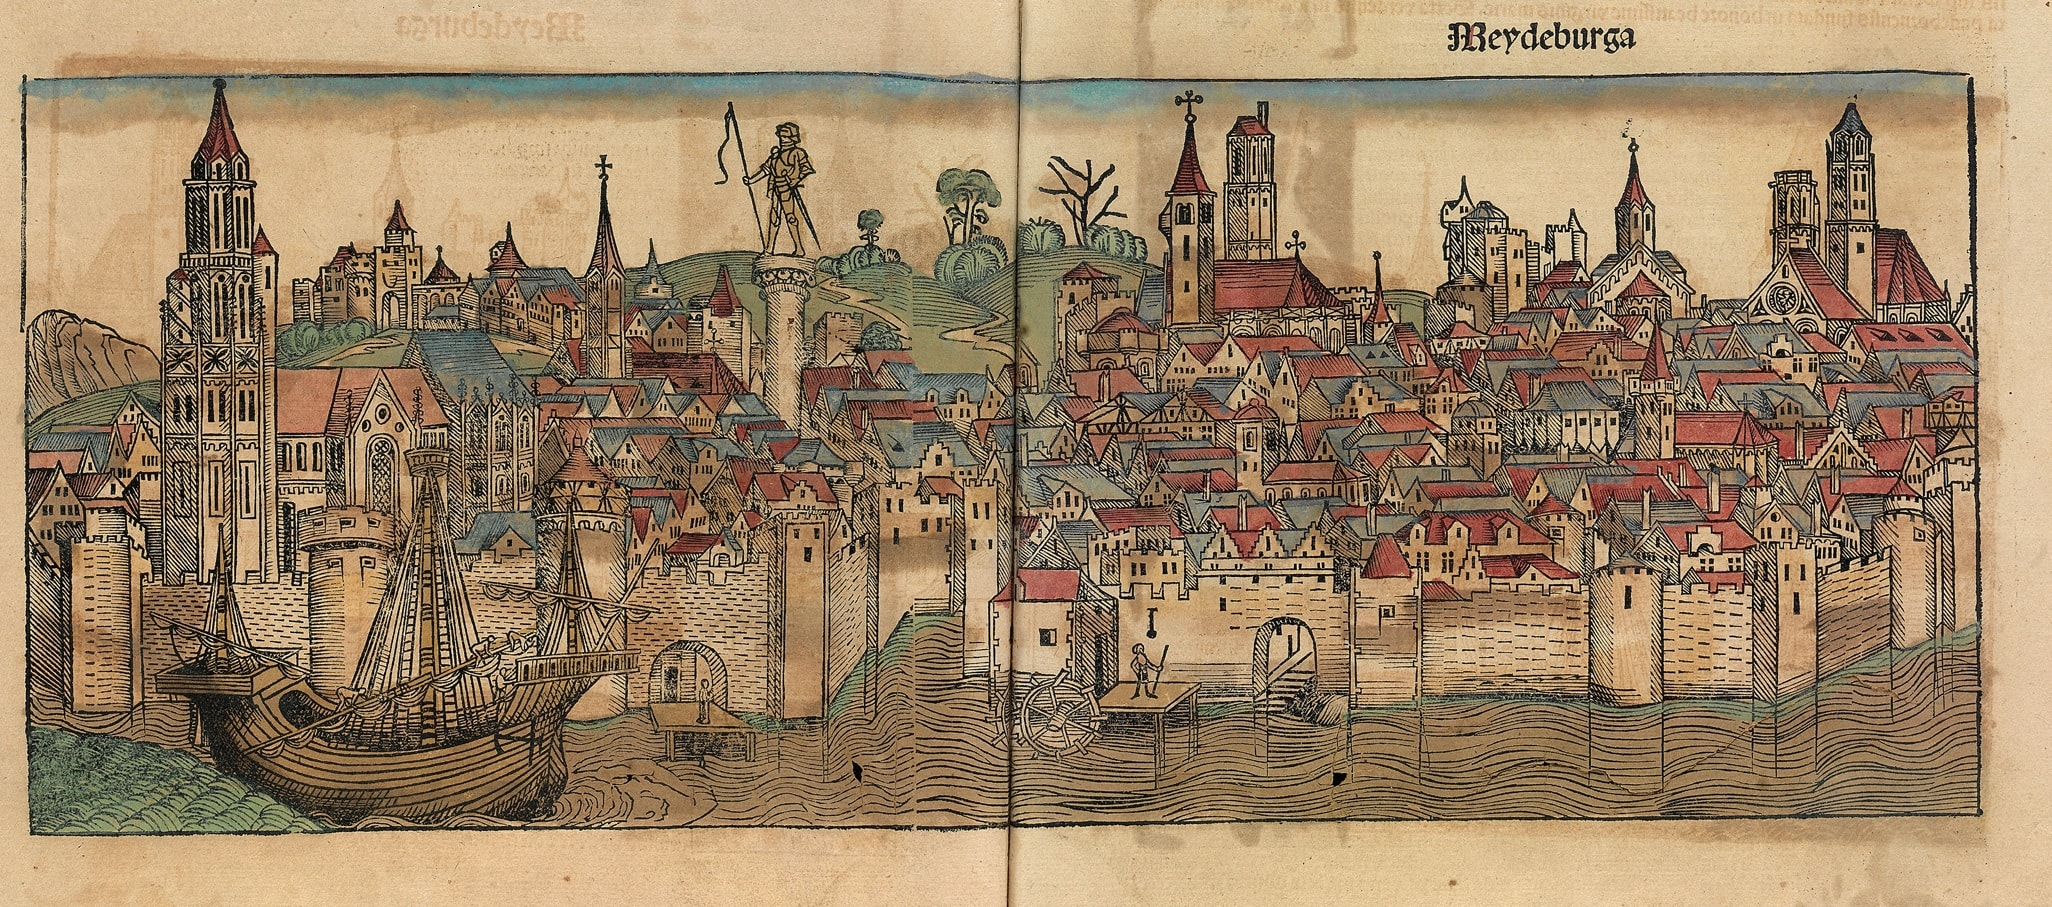 Nuremberg chronicles MEYDEBURGA min